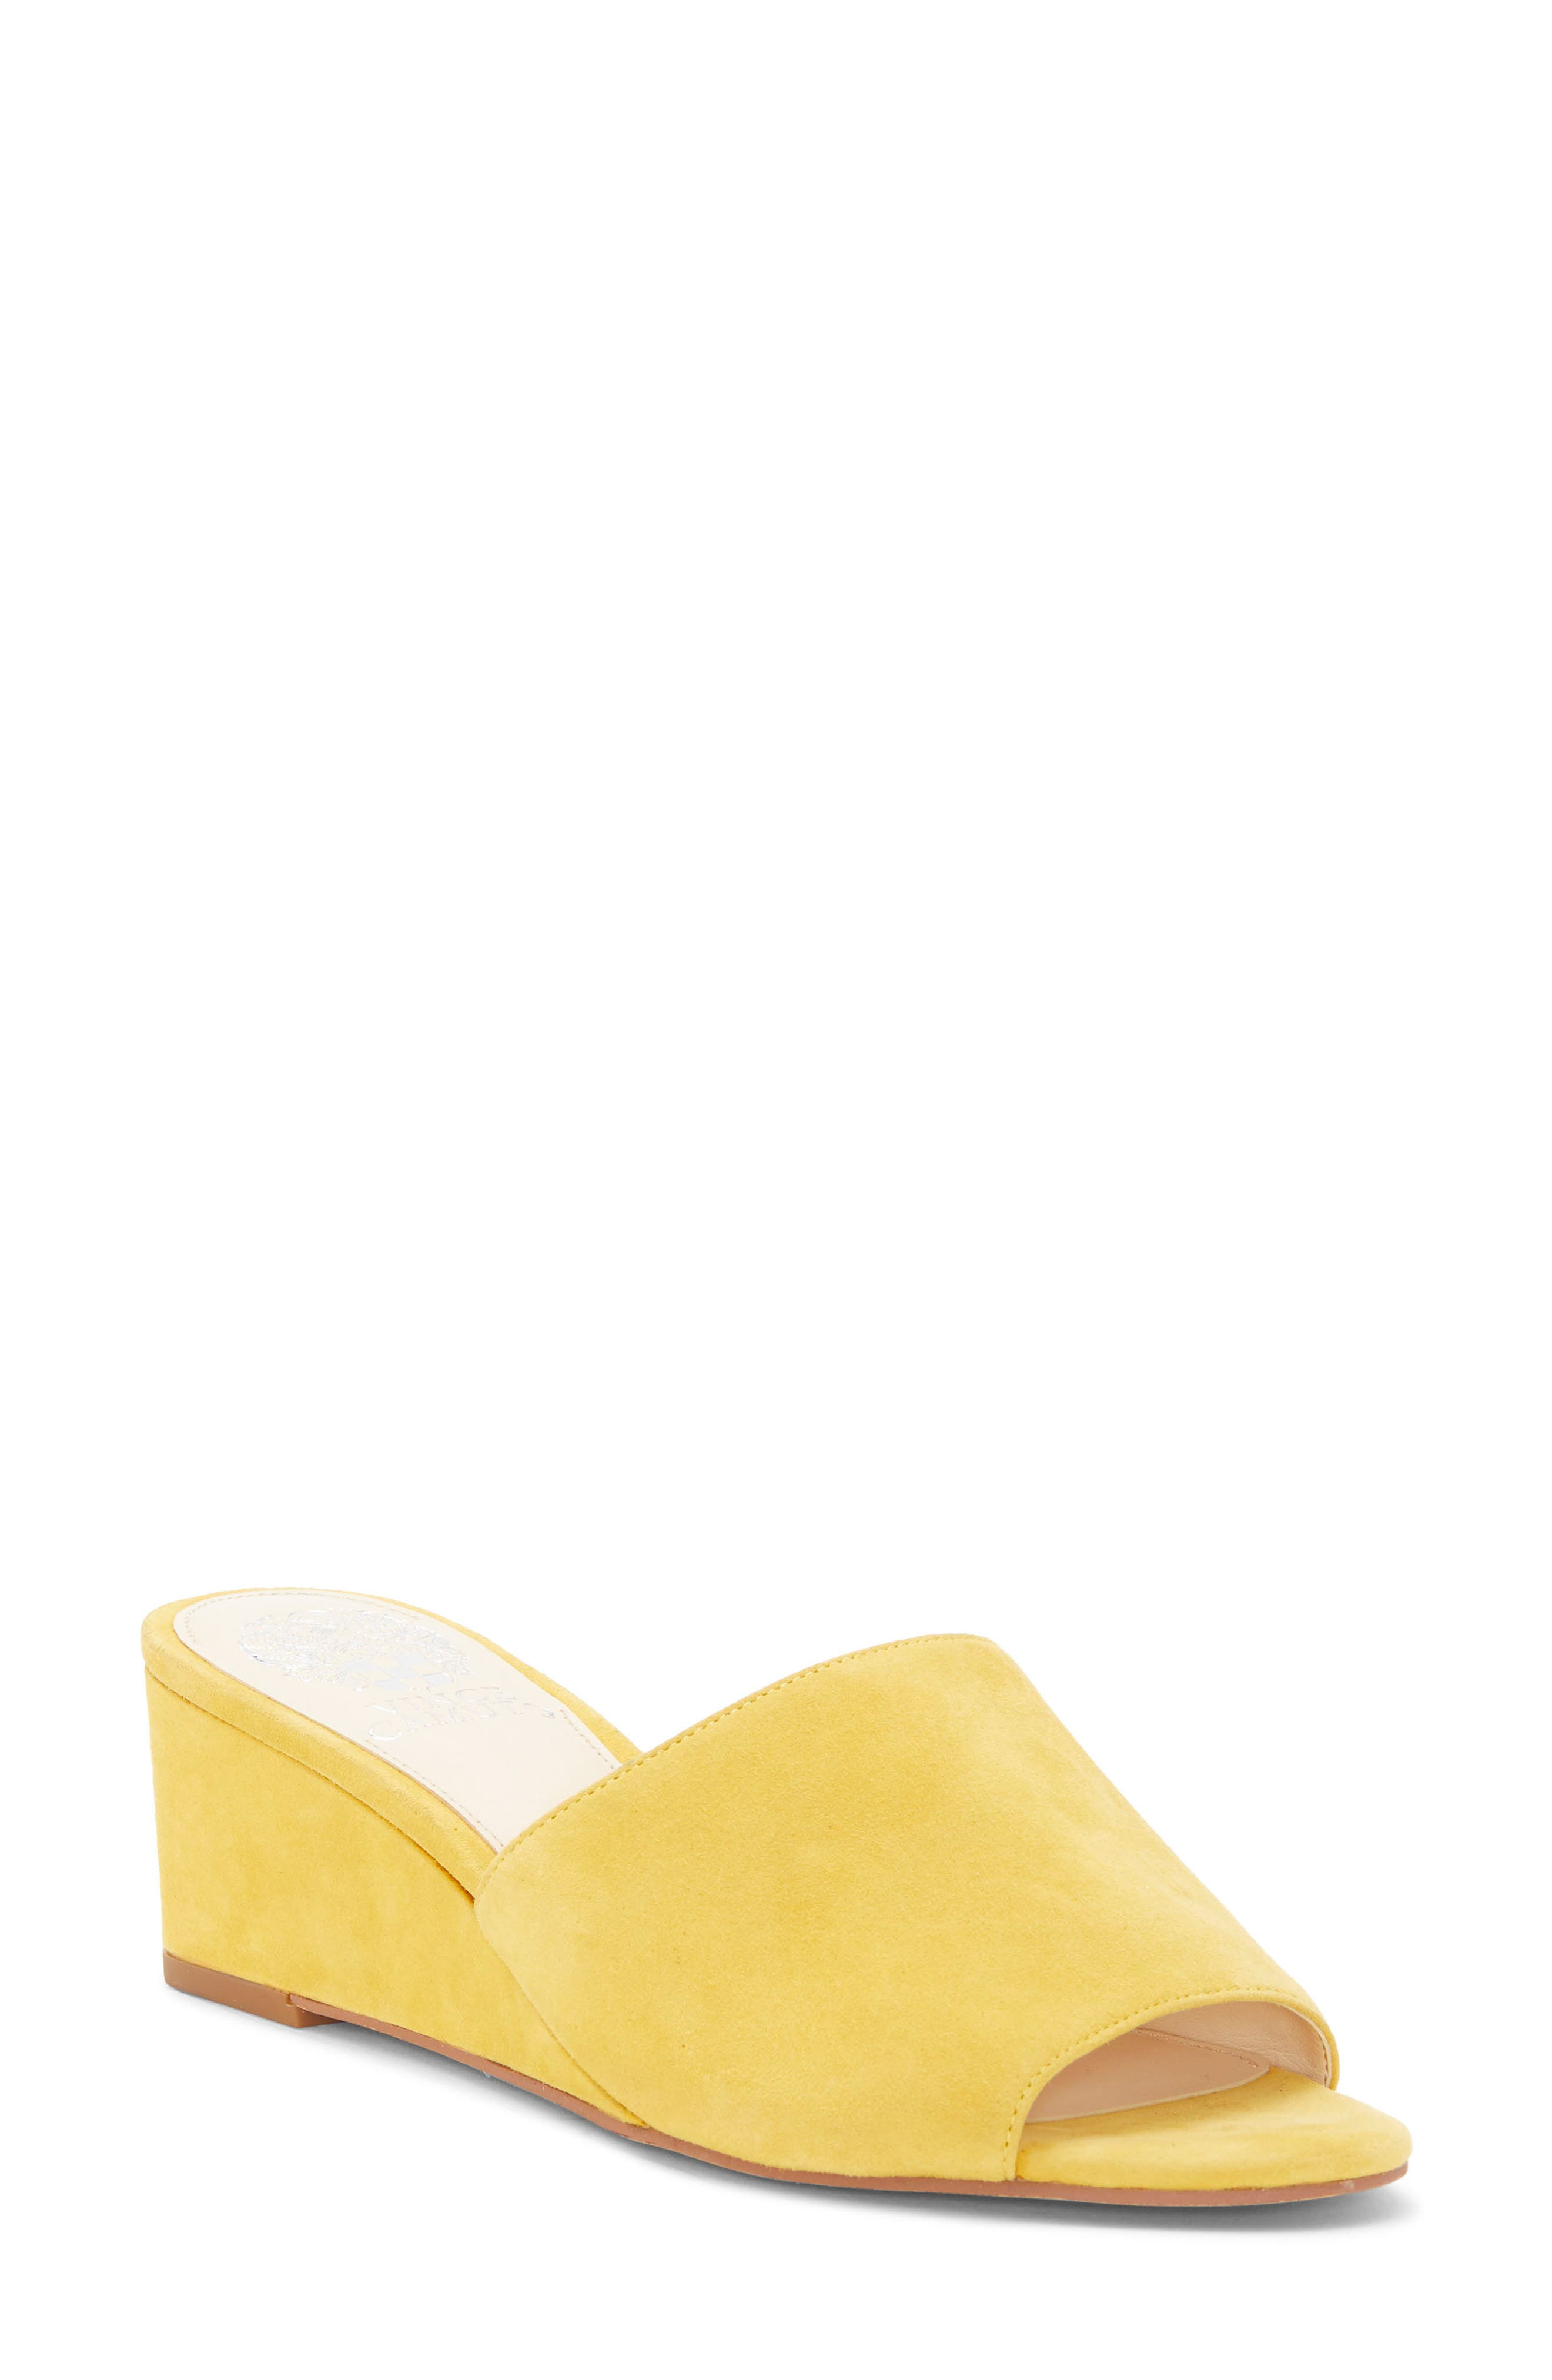 a86b32c95c42 Wedges Vince Camuto for Women